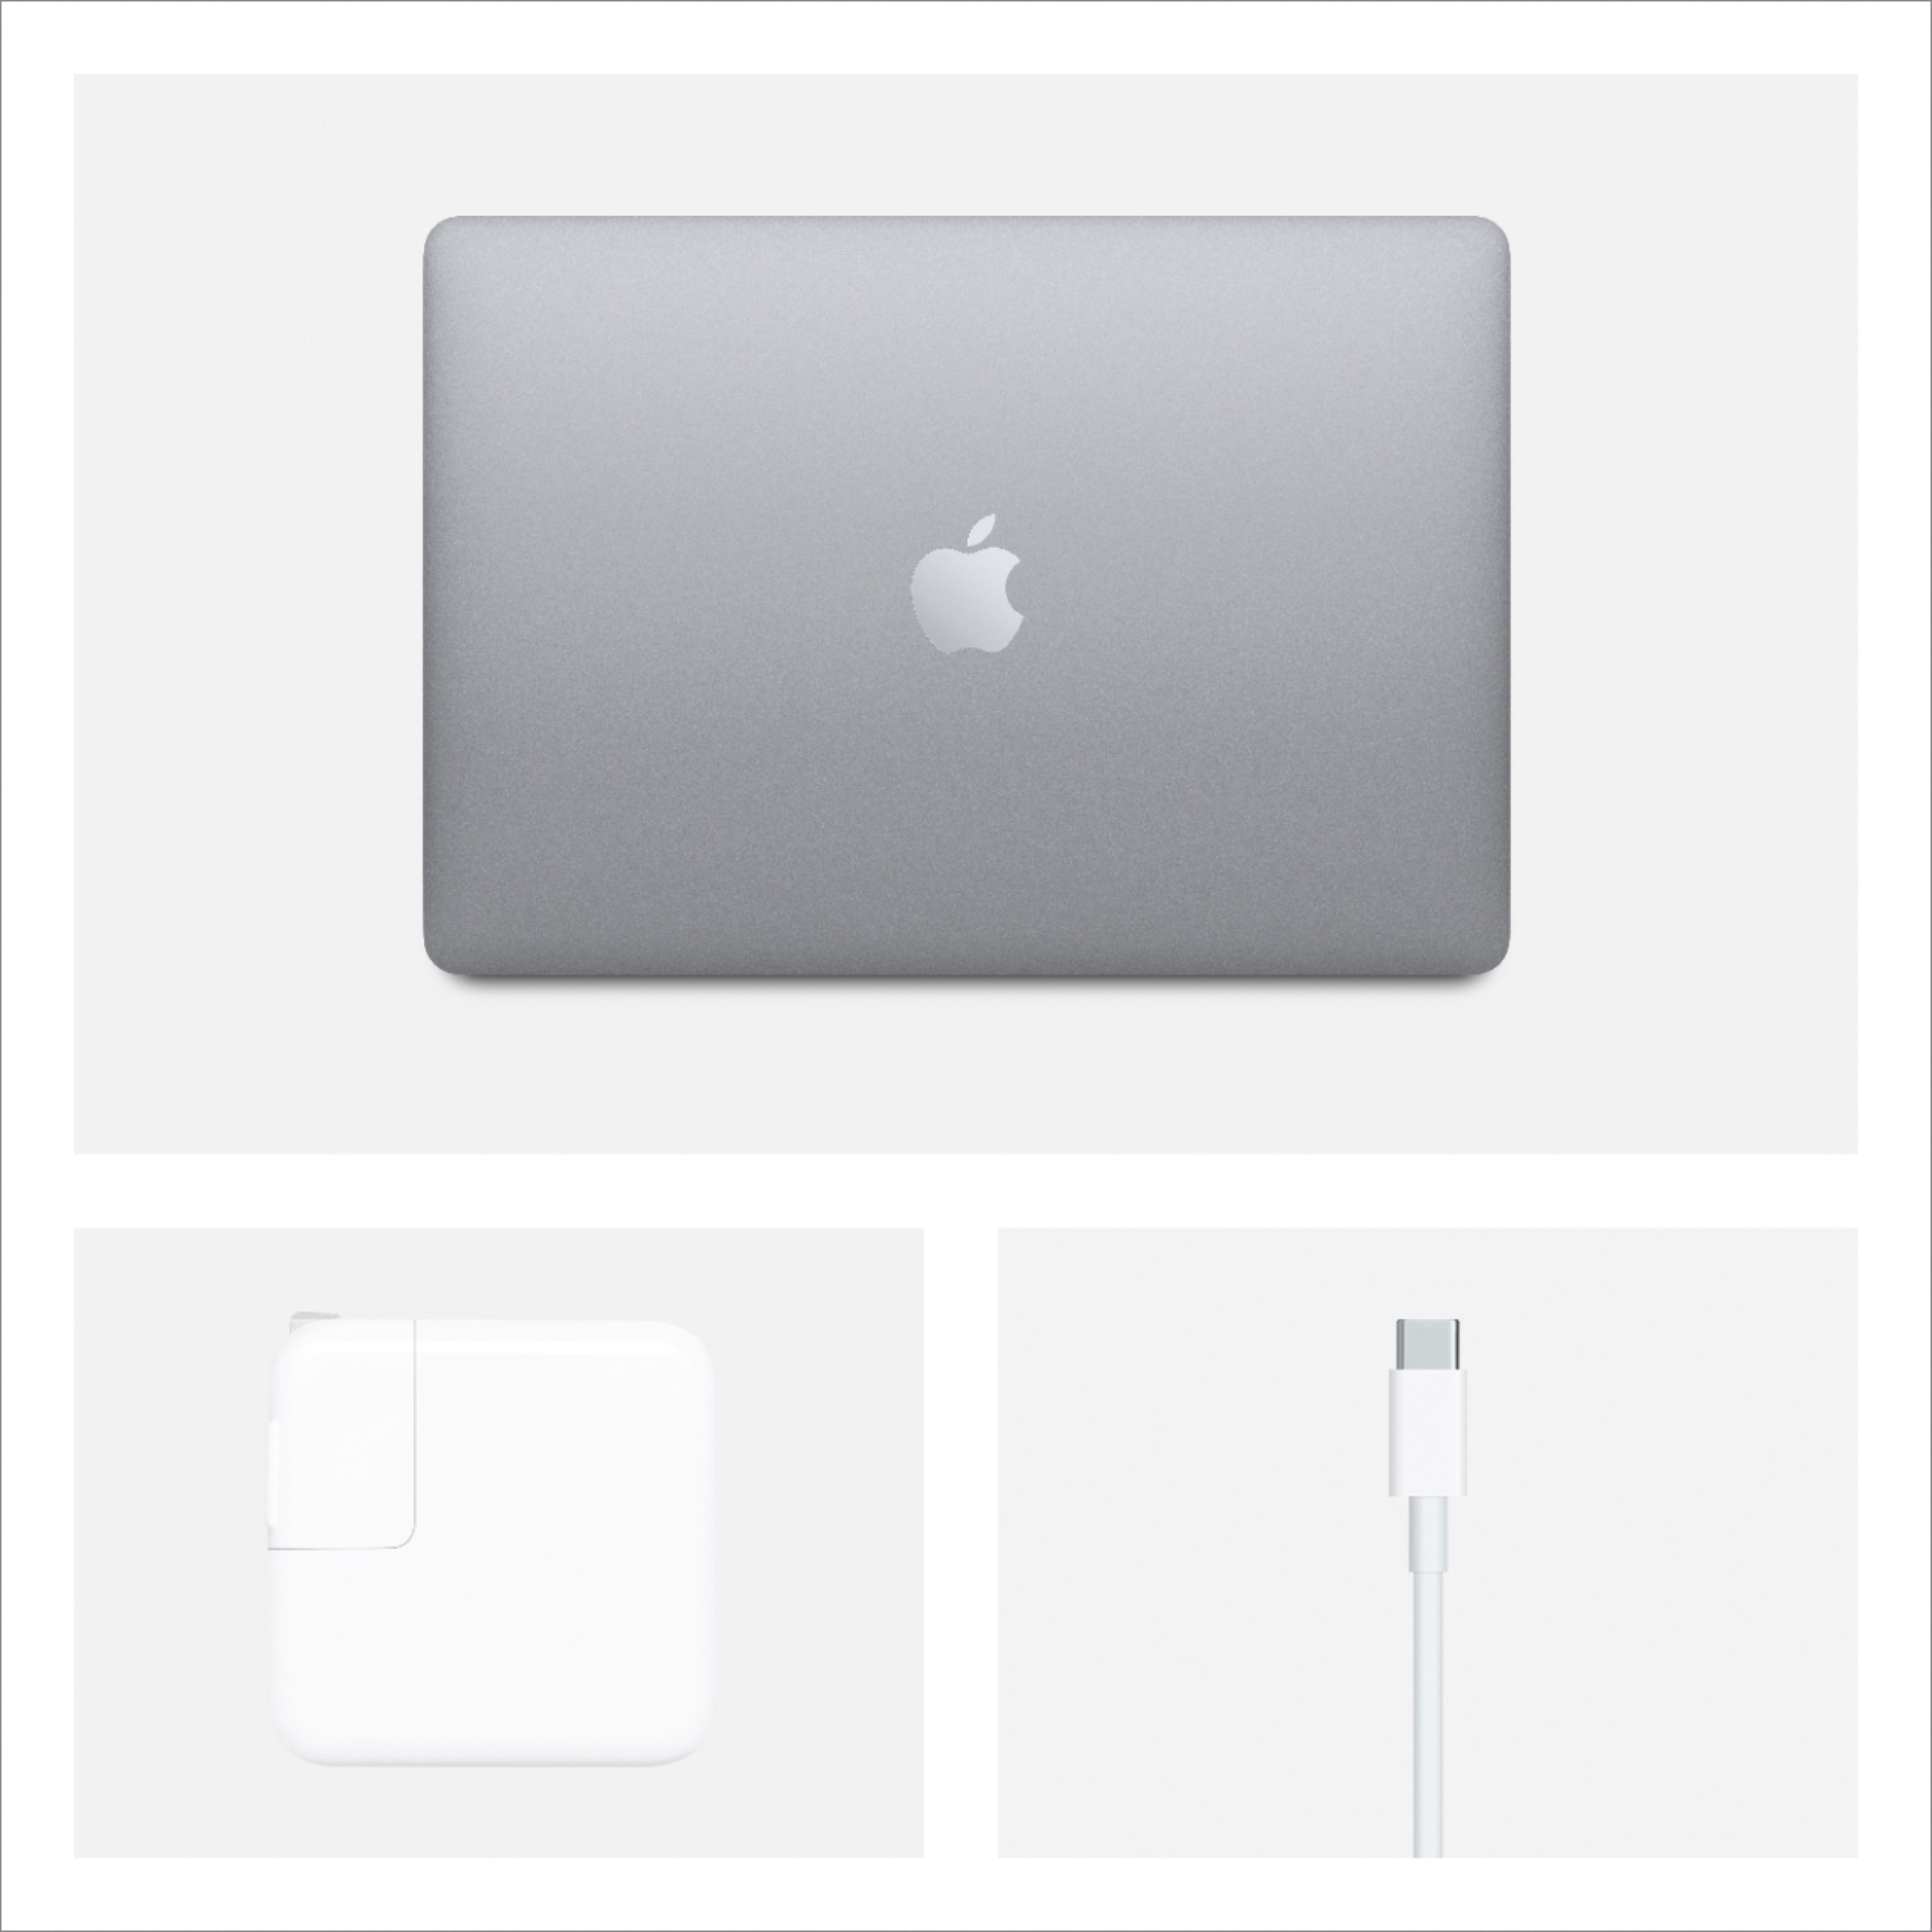 "Alt View Zoom 15. Apple - MacBook Air 13.3"" Laptop with Touch ID - Intel Core i5 - 8GB Memory - 512GB Solid State Drive - Space Gray."